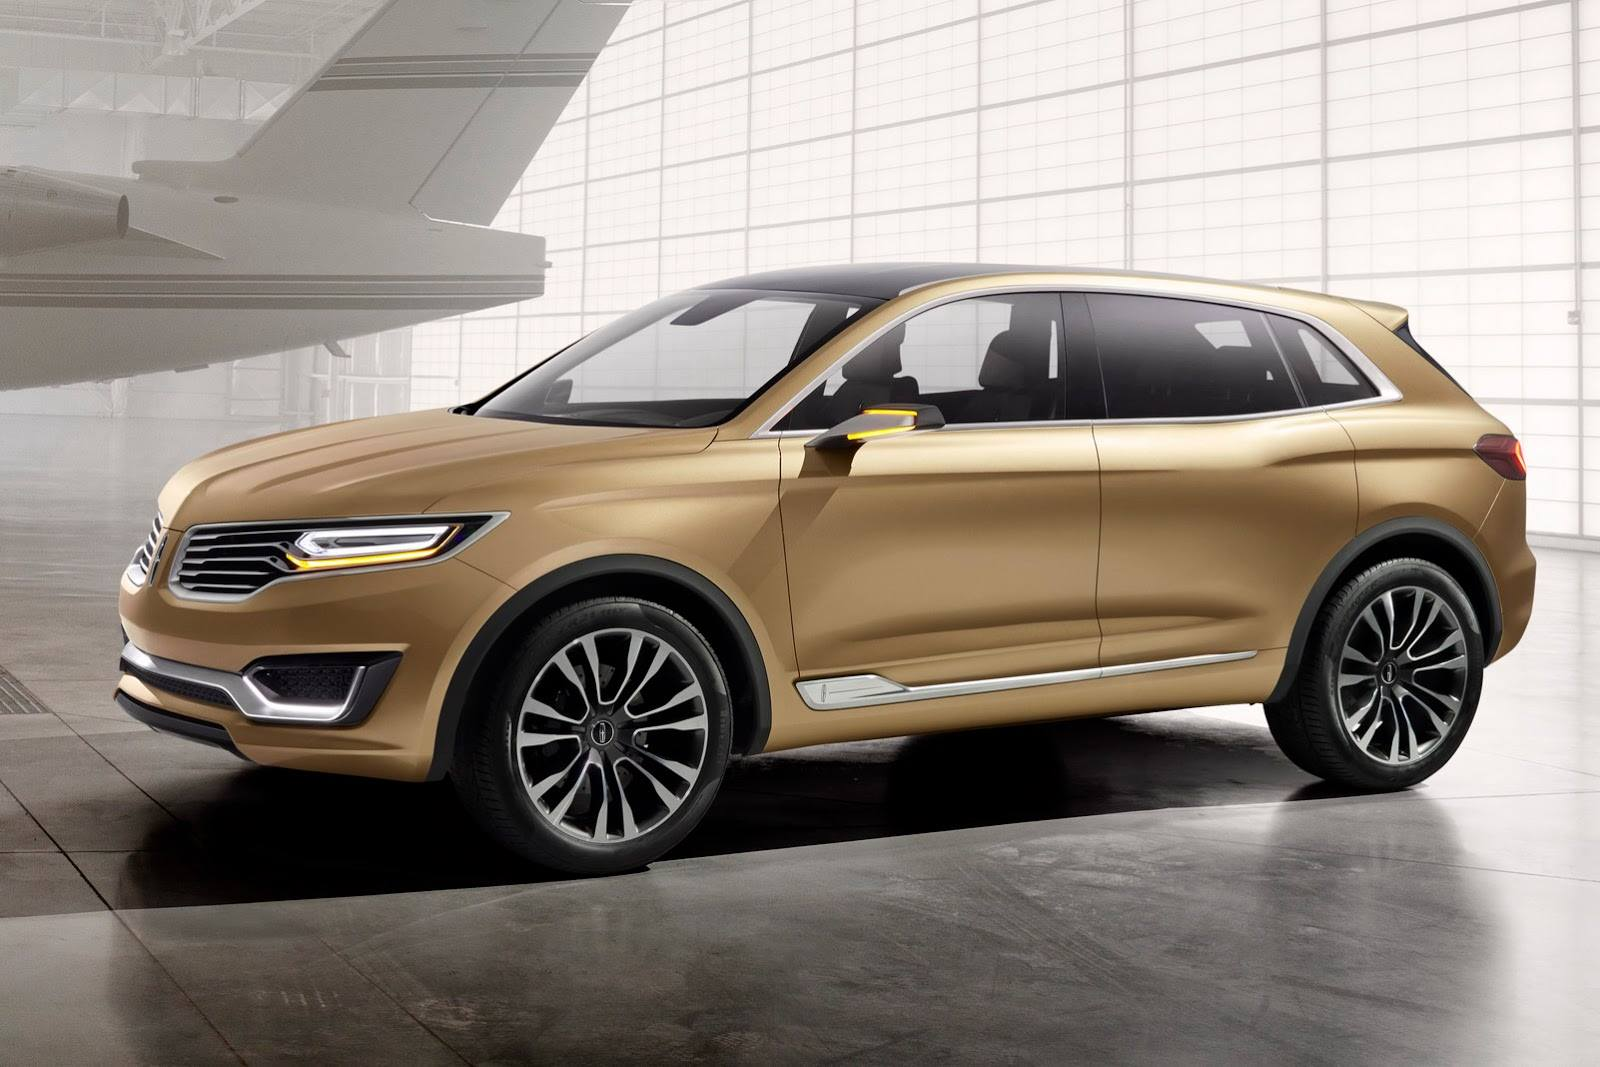 2020 Lincoln Mkx At Beijing Motor Show Redesign and Concept